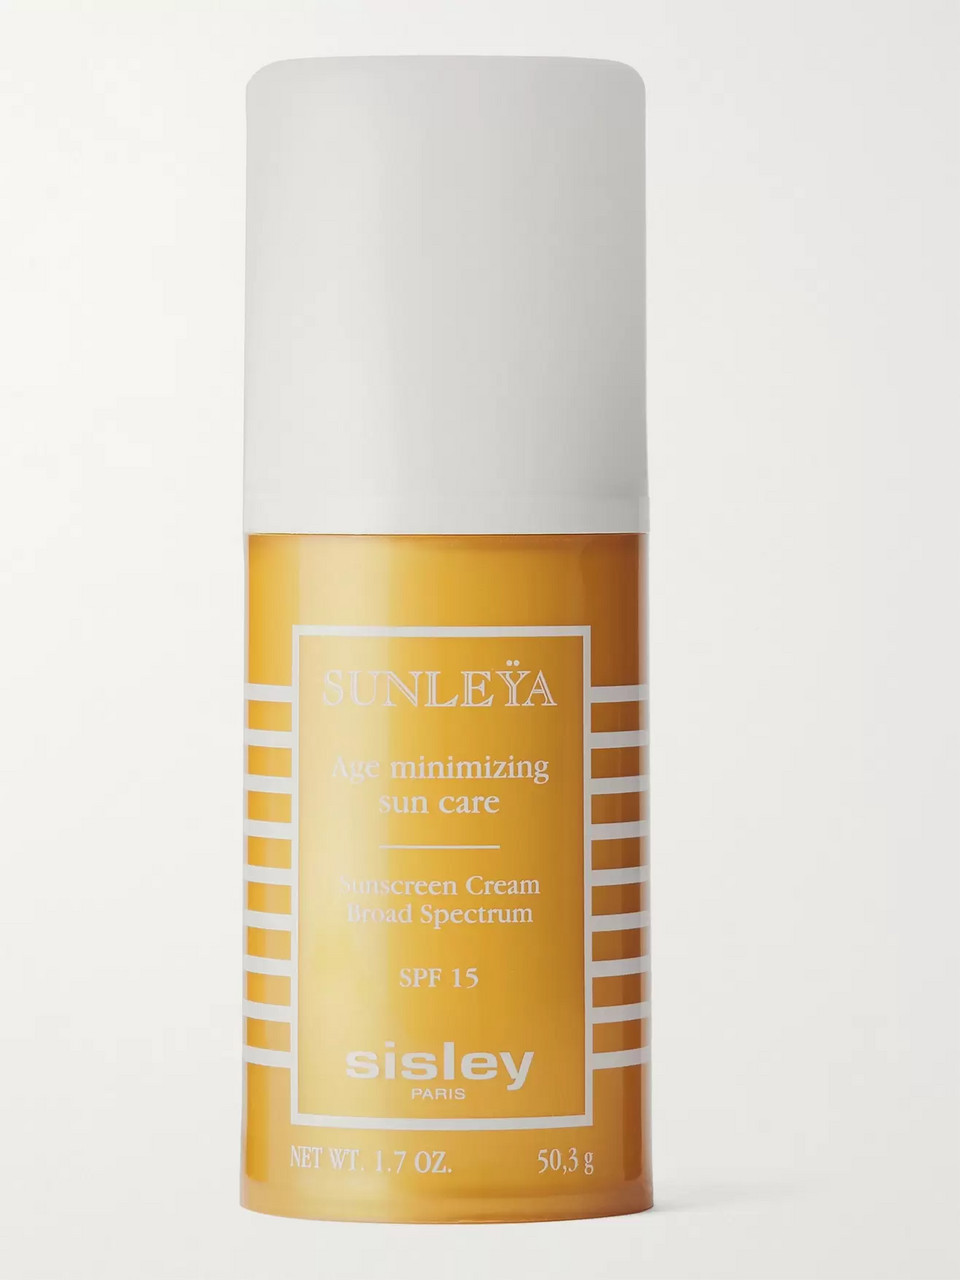 Sisley - Paris SPF15 Sunleÿa G.E. Age-Minimizing Sun Care, 50ml